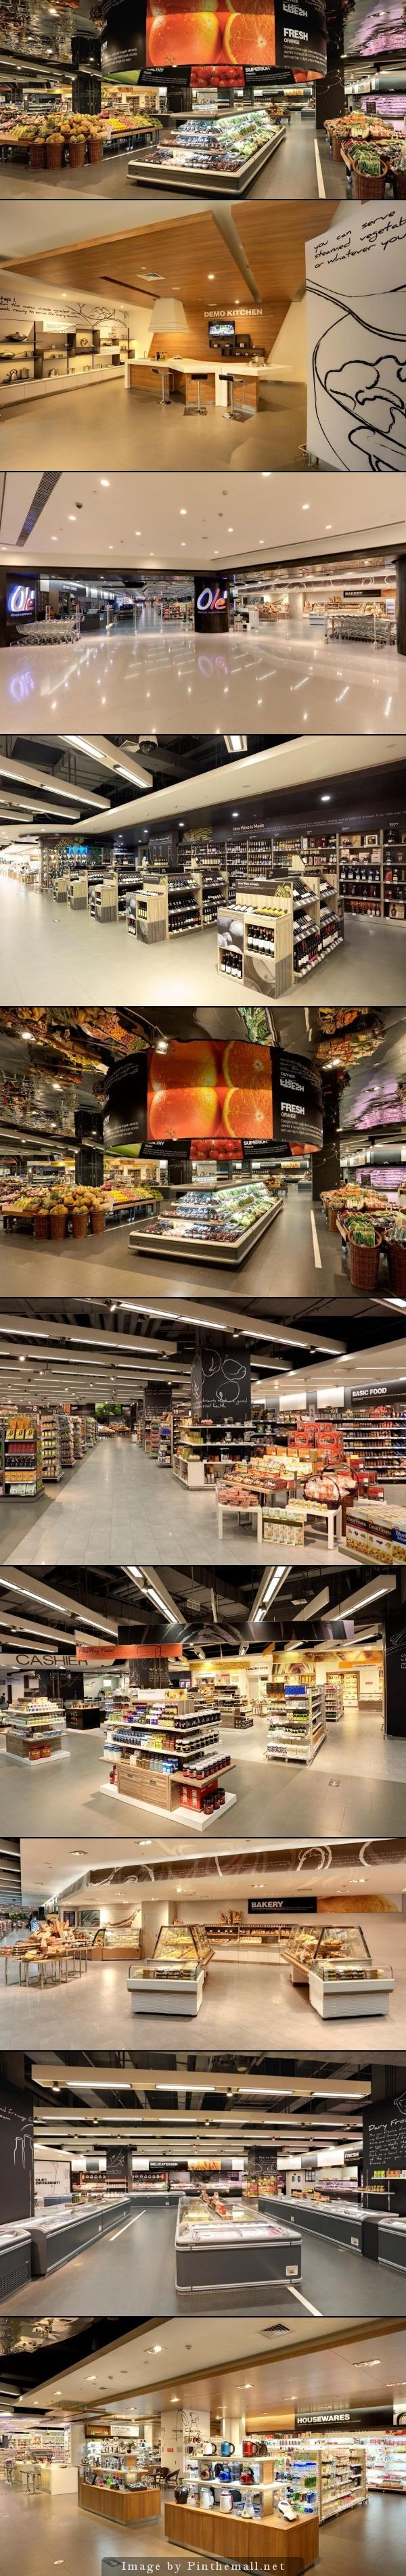 Ole grocery store by rkd retail/iQ, Shen Zhen - created on 2014-09-14 11:47:57